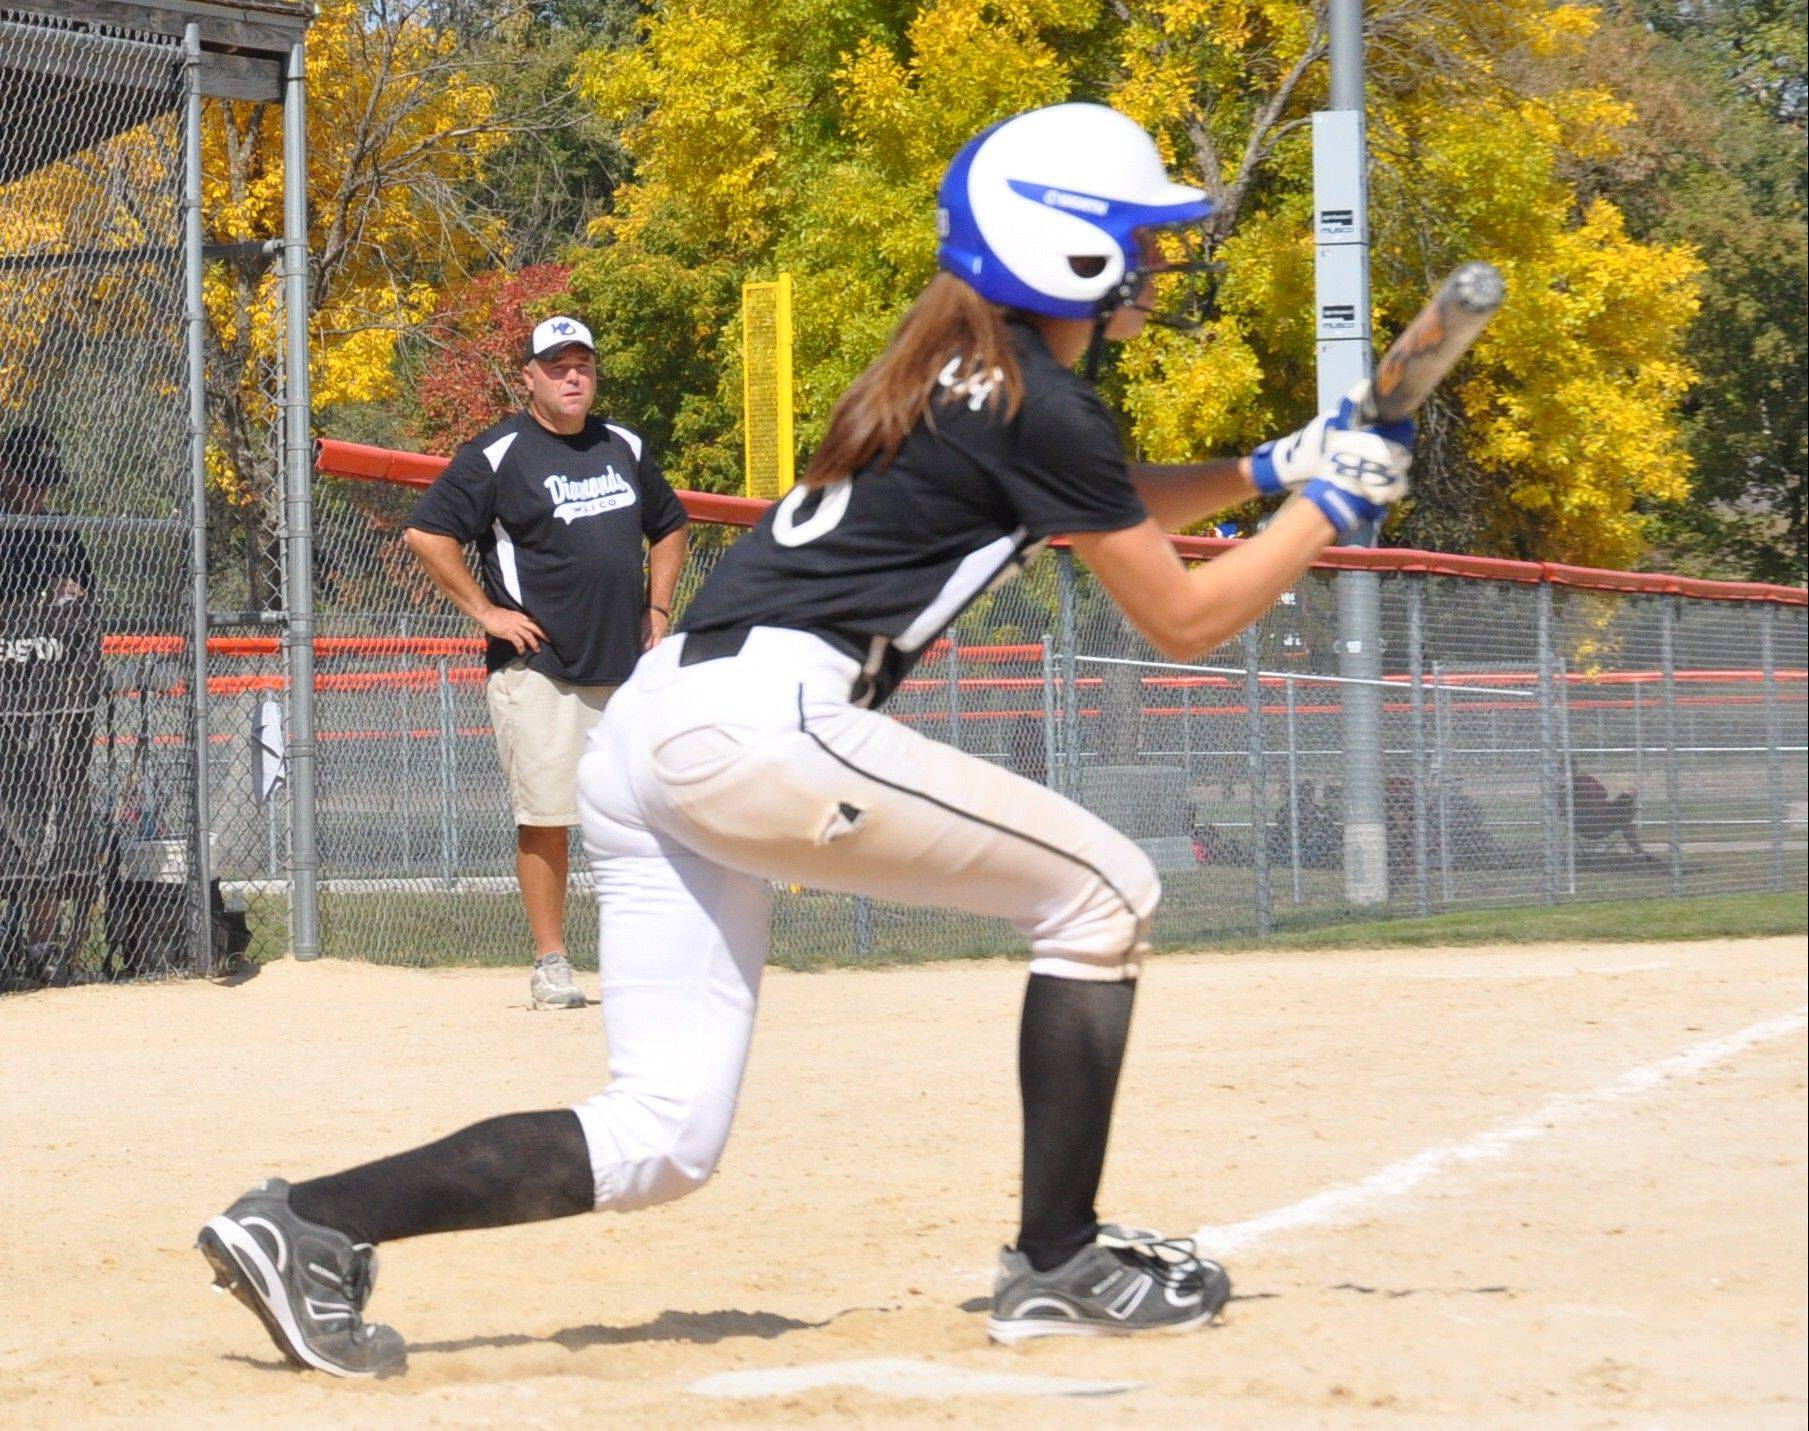 Emma Spagnola, a junior at West Aurora, squares around for a bunt last year for her Wasco Diamonds travel team. The talented two-sport standout decided to play softball in college.